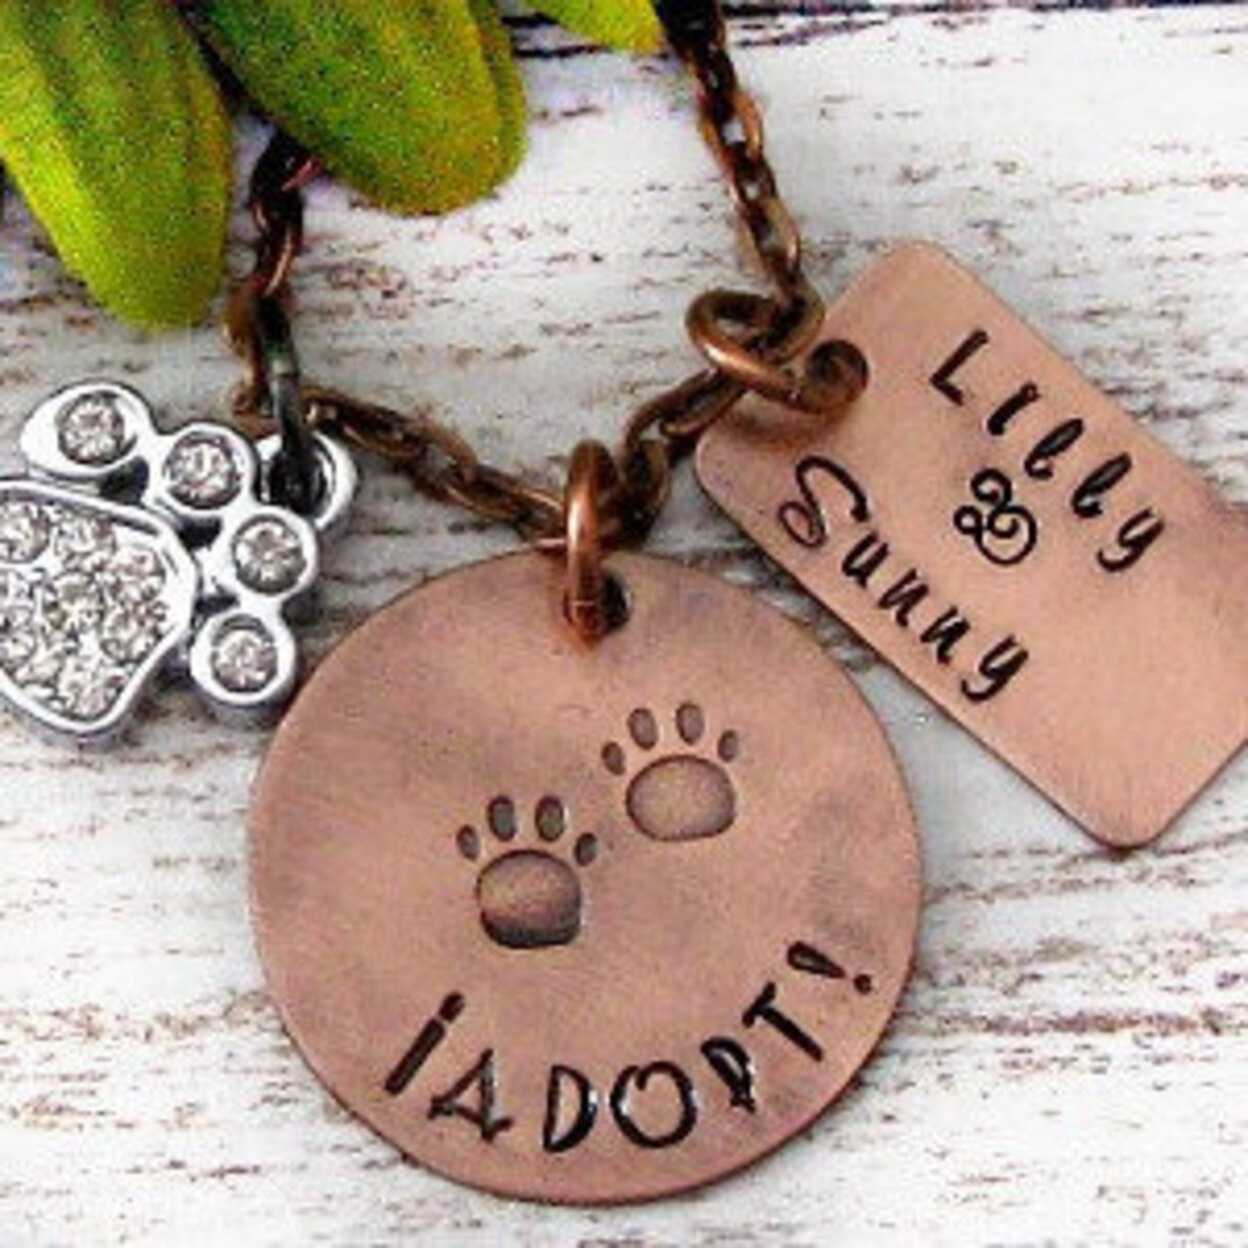 Rescue Pet Hand Stamped Personalized Necklace - Dog Adoption, Cat Adoption, Animal Shelter 52f91267c46da15875000114